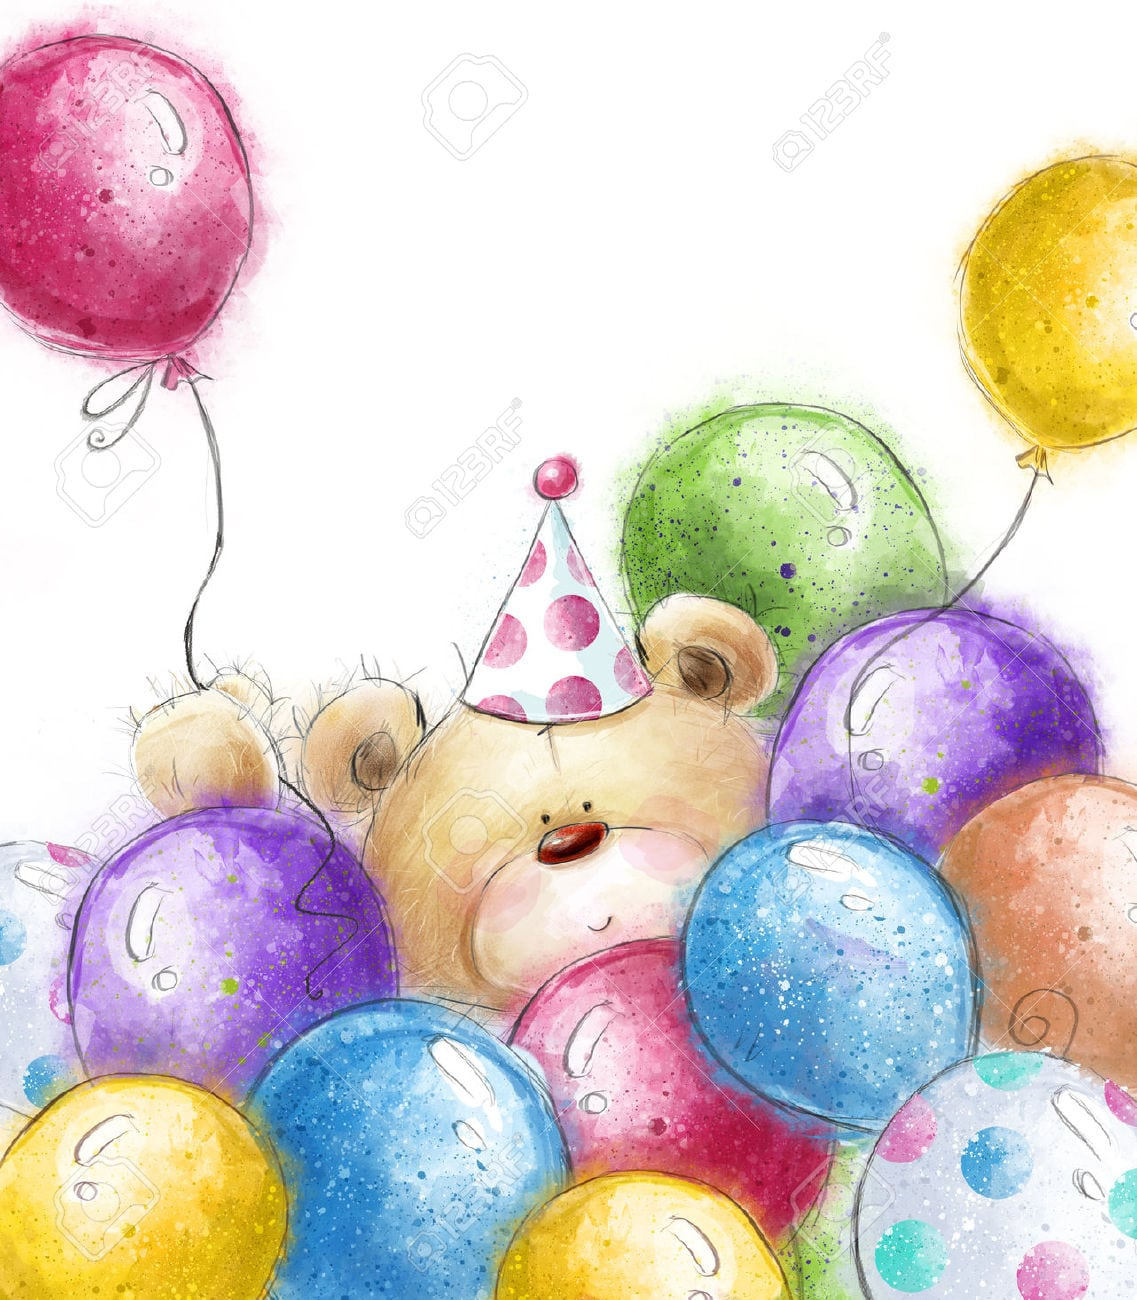 Cute Teddy Bear With The Colorful Balloons Background With Bear